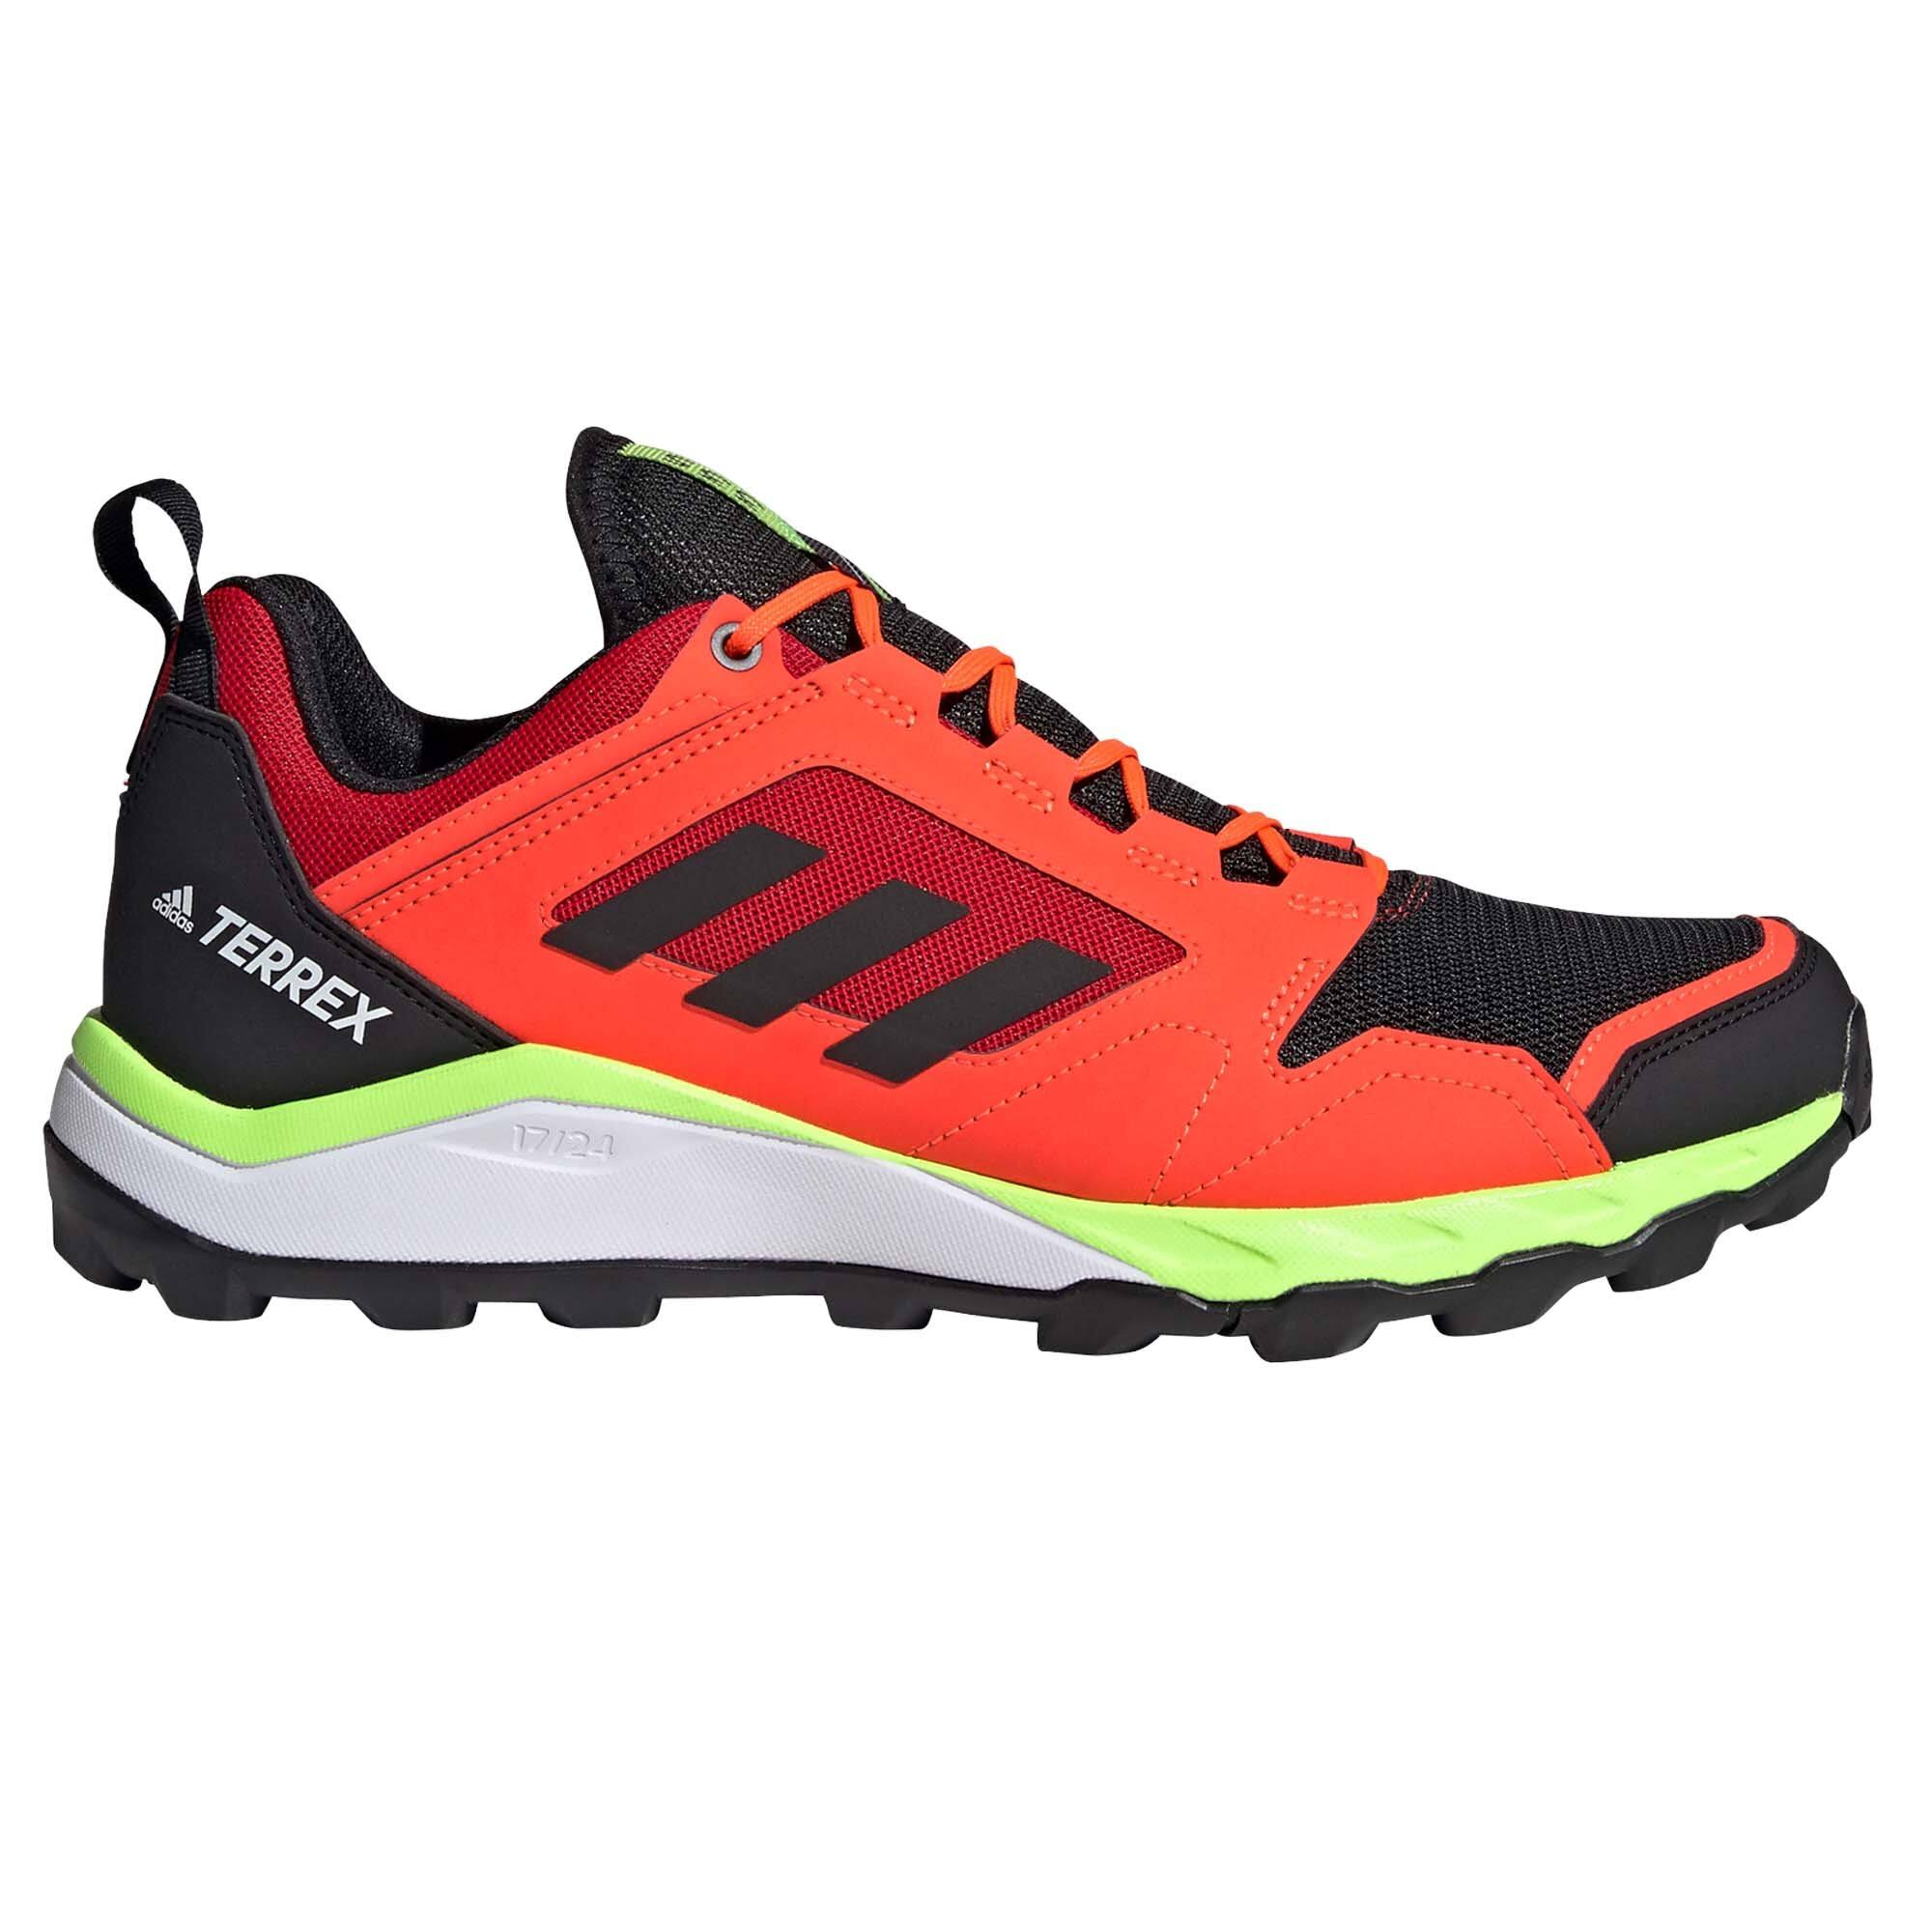 Adidas Terrex Agravic TR - Trail Running Shoes